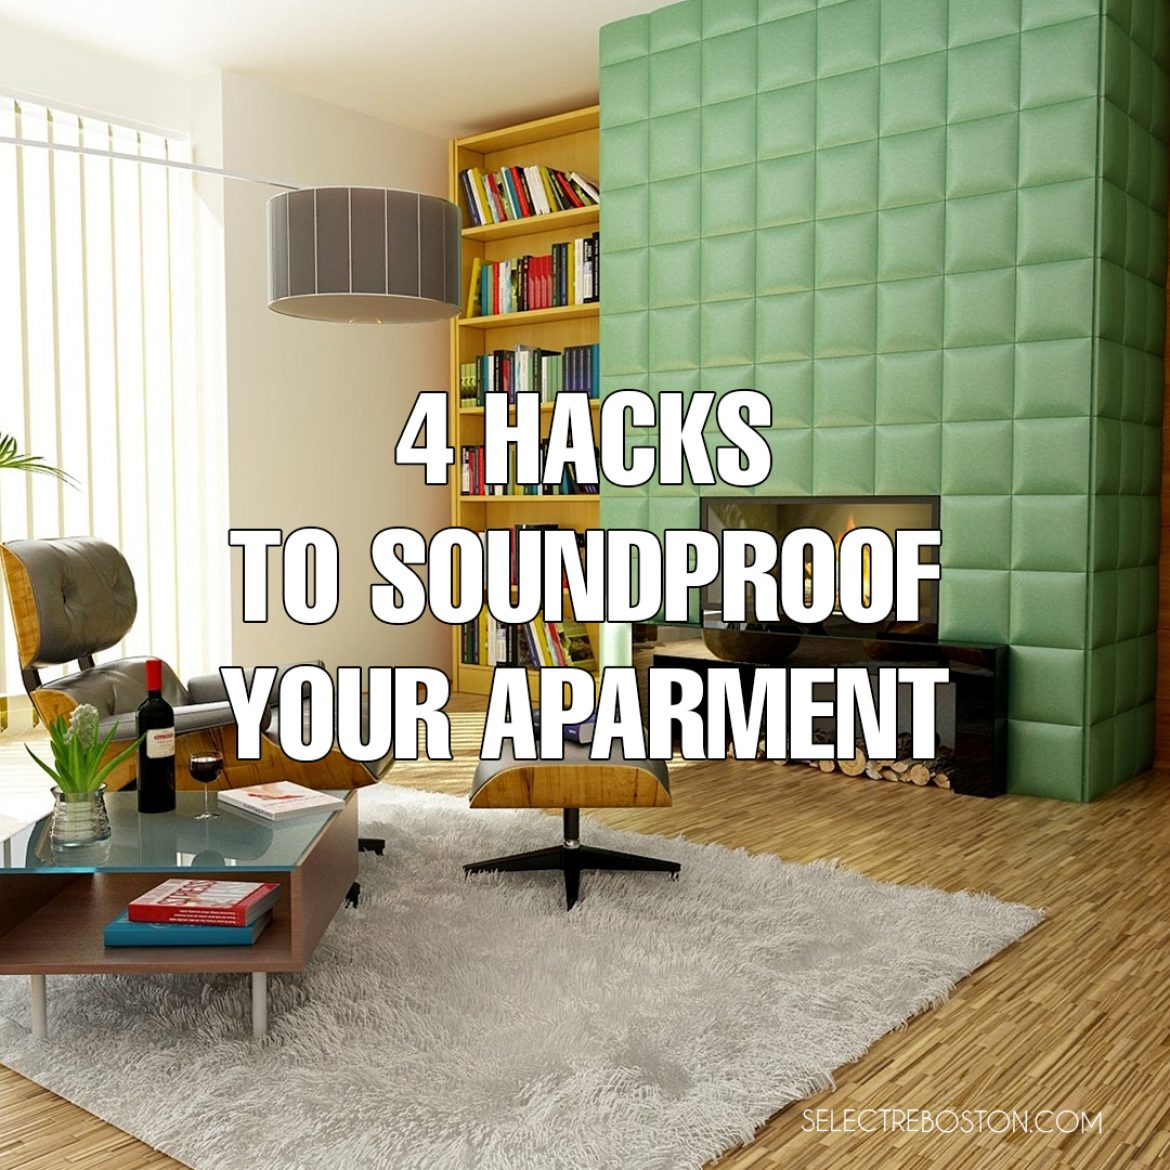 4 Hacks To Soundproof Your Apartment Selectre Boston